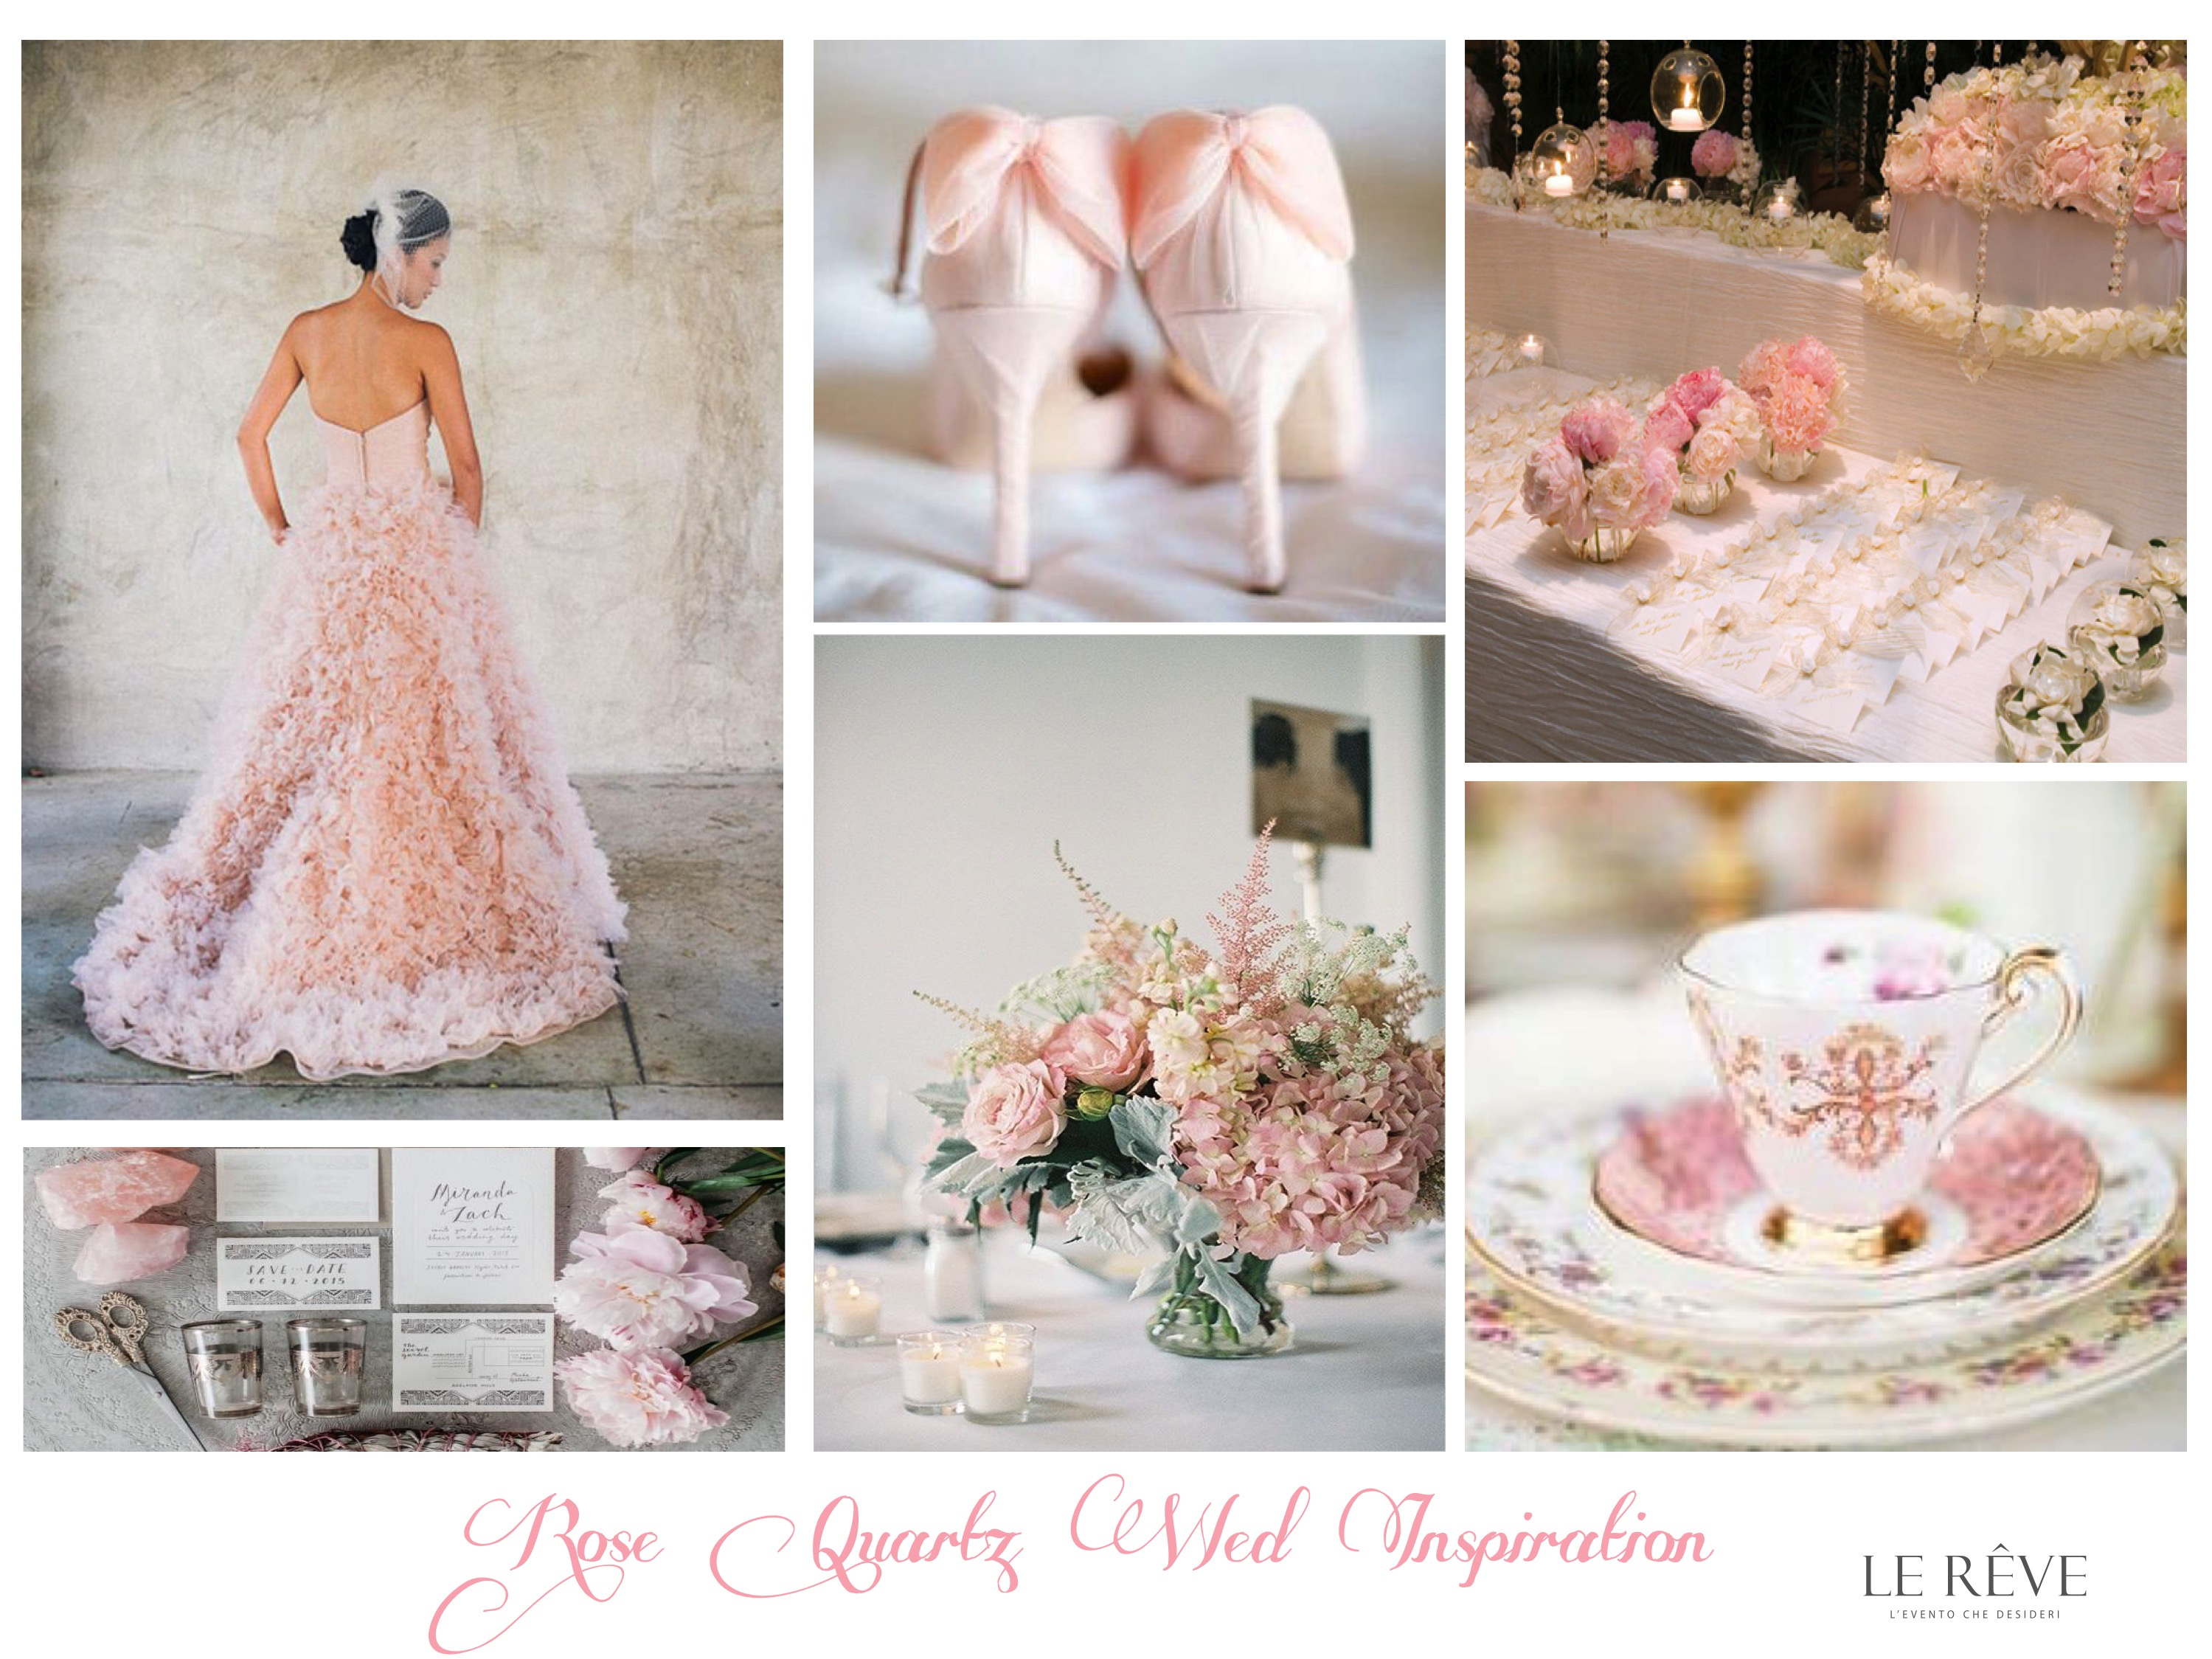 pantone trend color 2016: Rose quartz